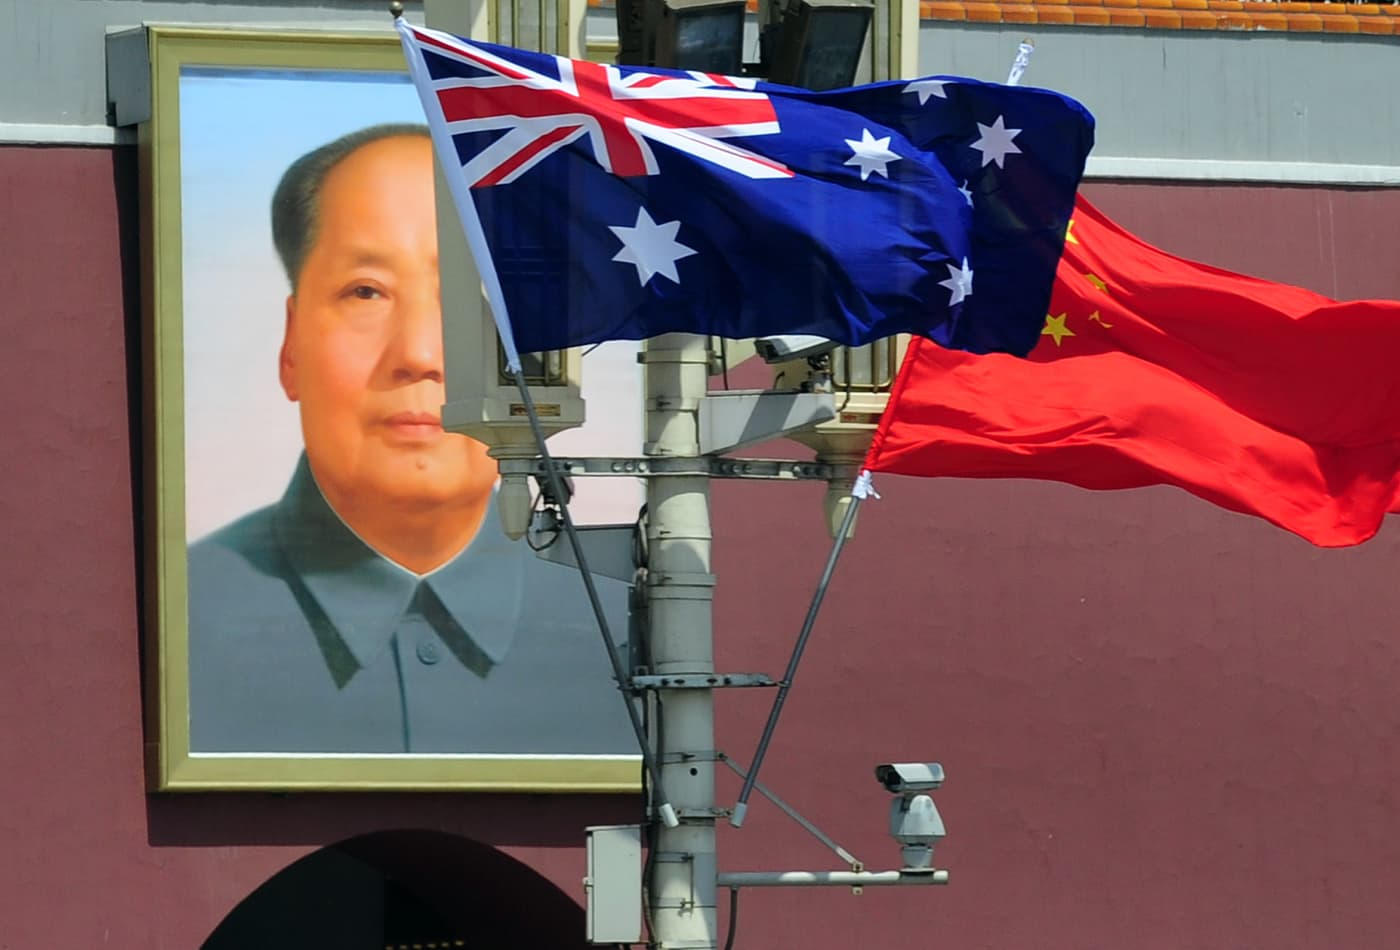 Australia wants its 'mutually beneficial' relationship with China to improve, Treasurer Frydenberg says